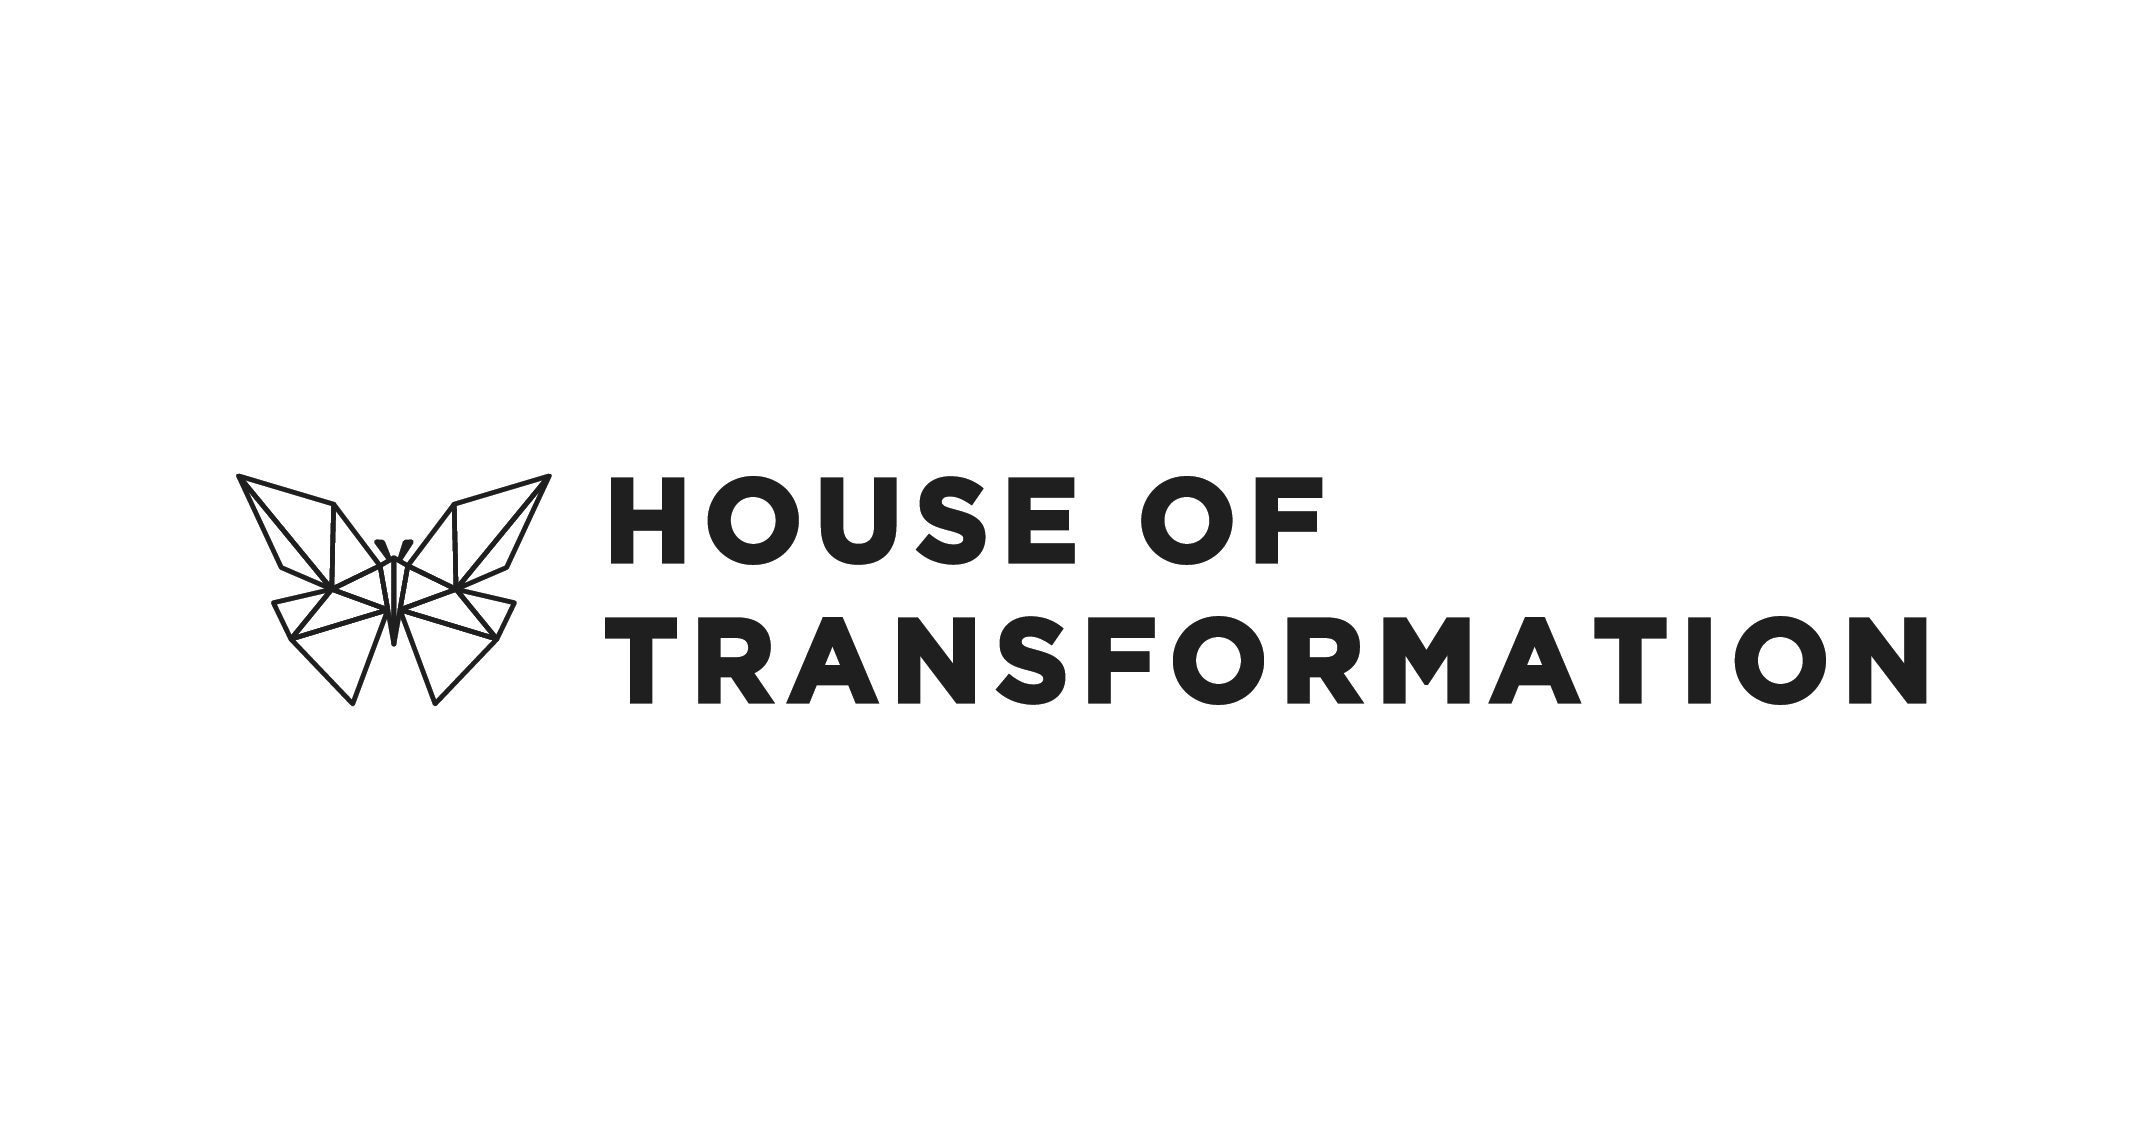 House of Transformation